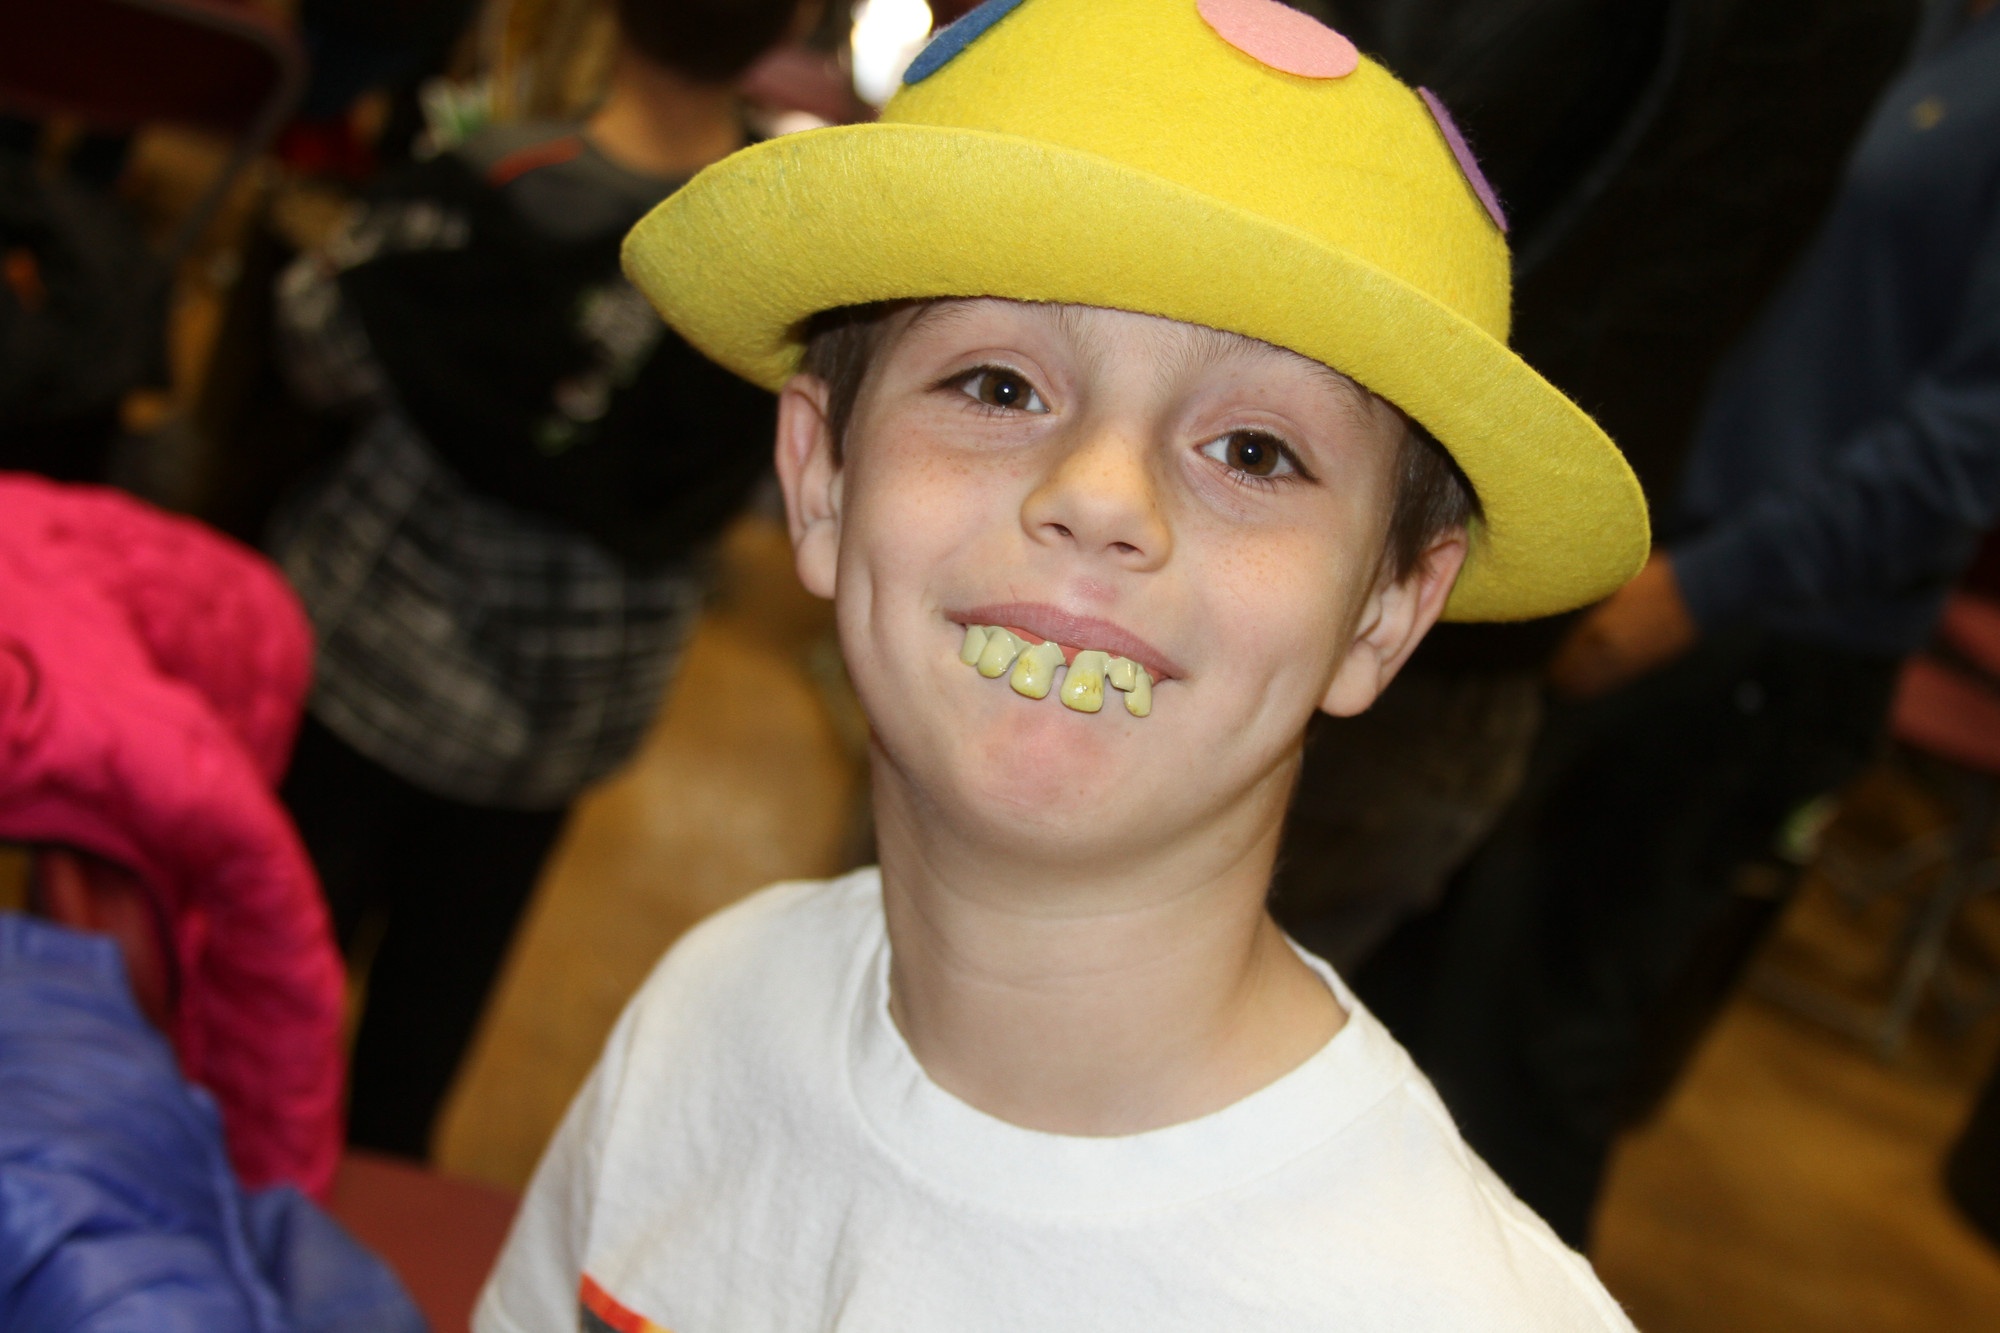 Michael Cafaro, 10, could use a dentist to straighten out his dental problems.